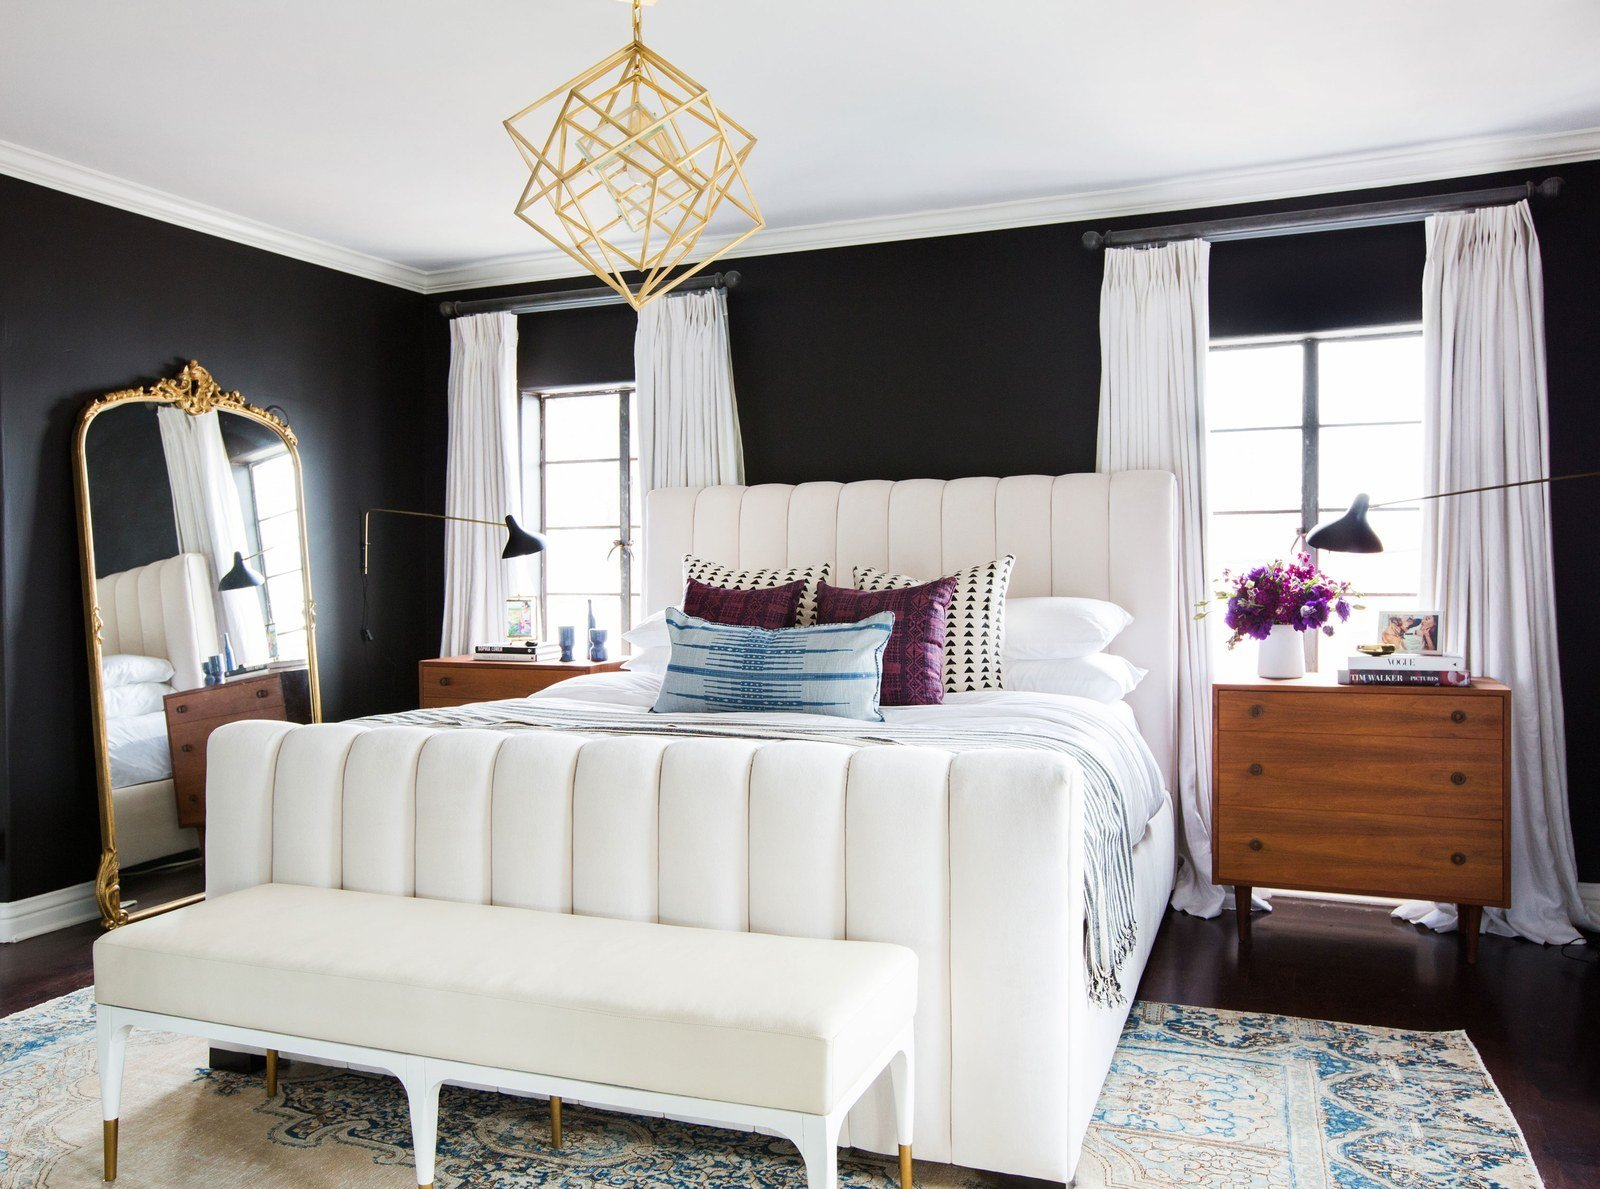 Best 12 Master Bedroom Decorating Ideas And Design Inspiration With Pictures